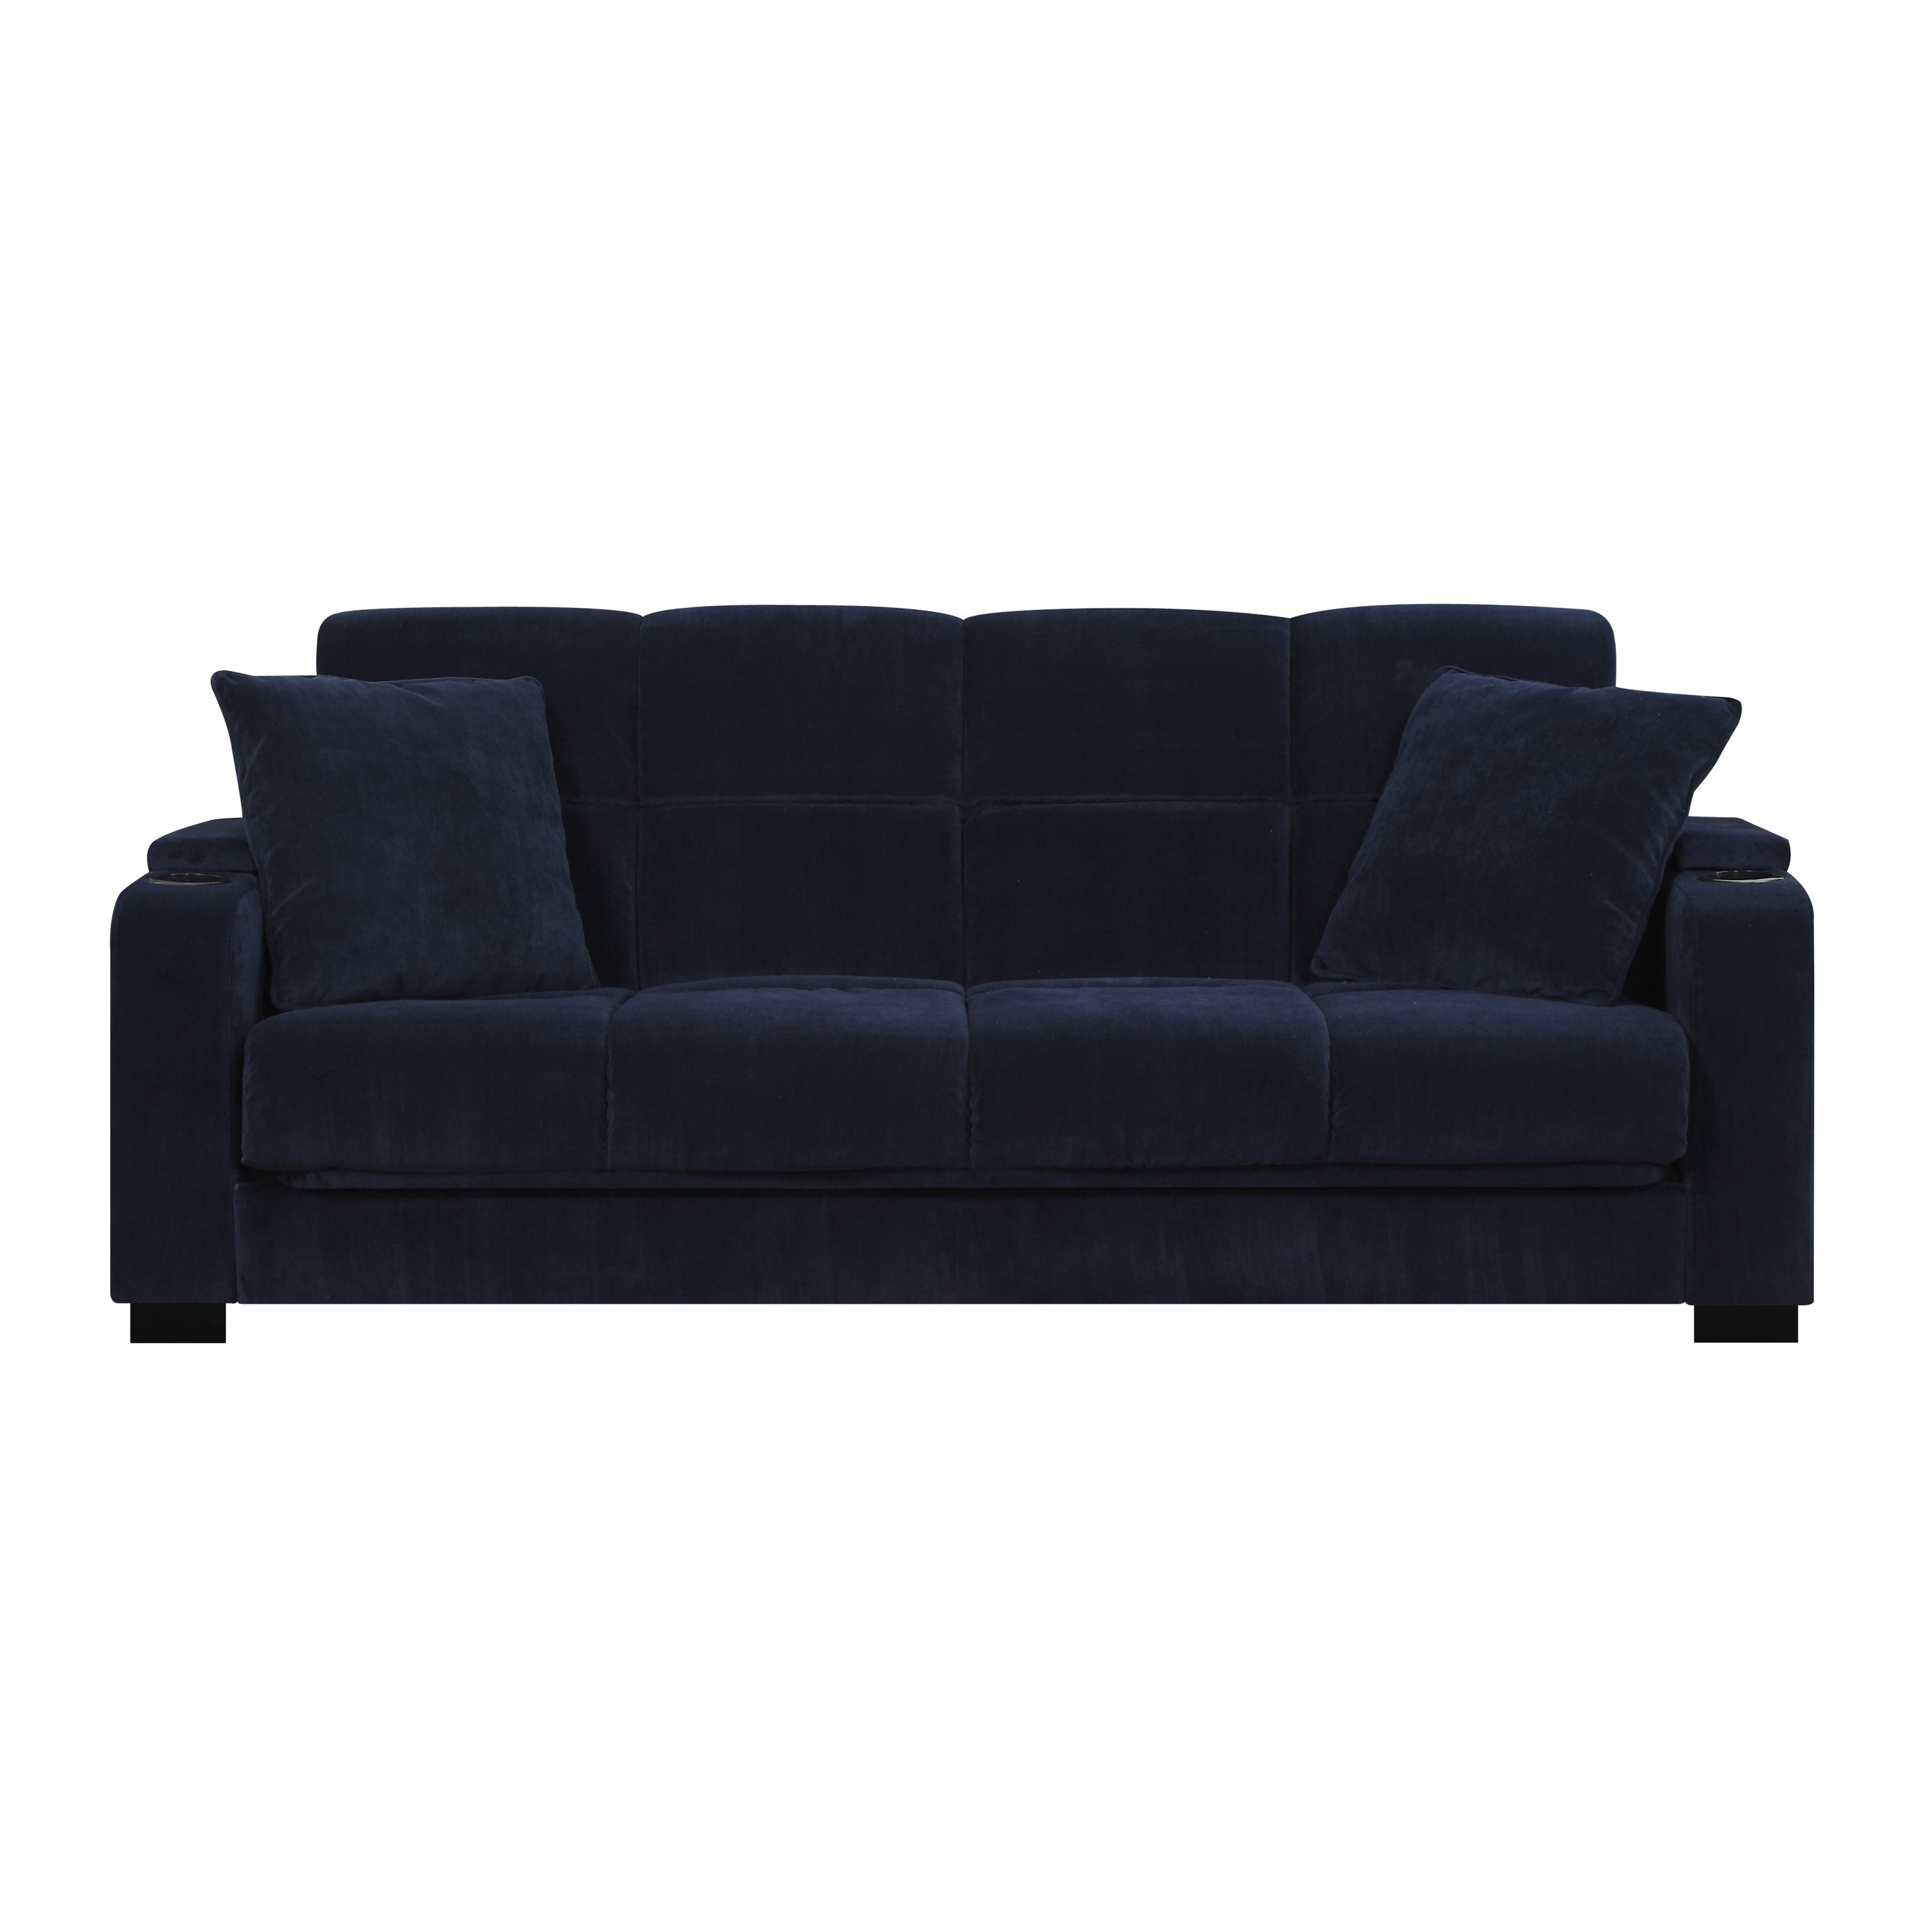 Shop Portfolio Tevin Navy Blue Velvet Convert A Couch Storage Arm Futon Sofa Sleeper On Sale Free Shipping Today Overstock 20603147